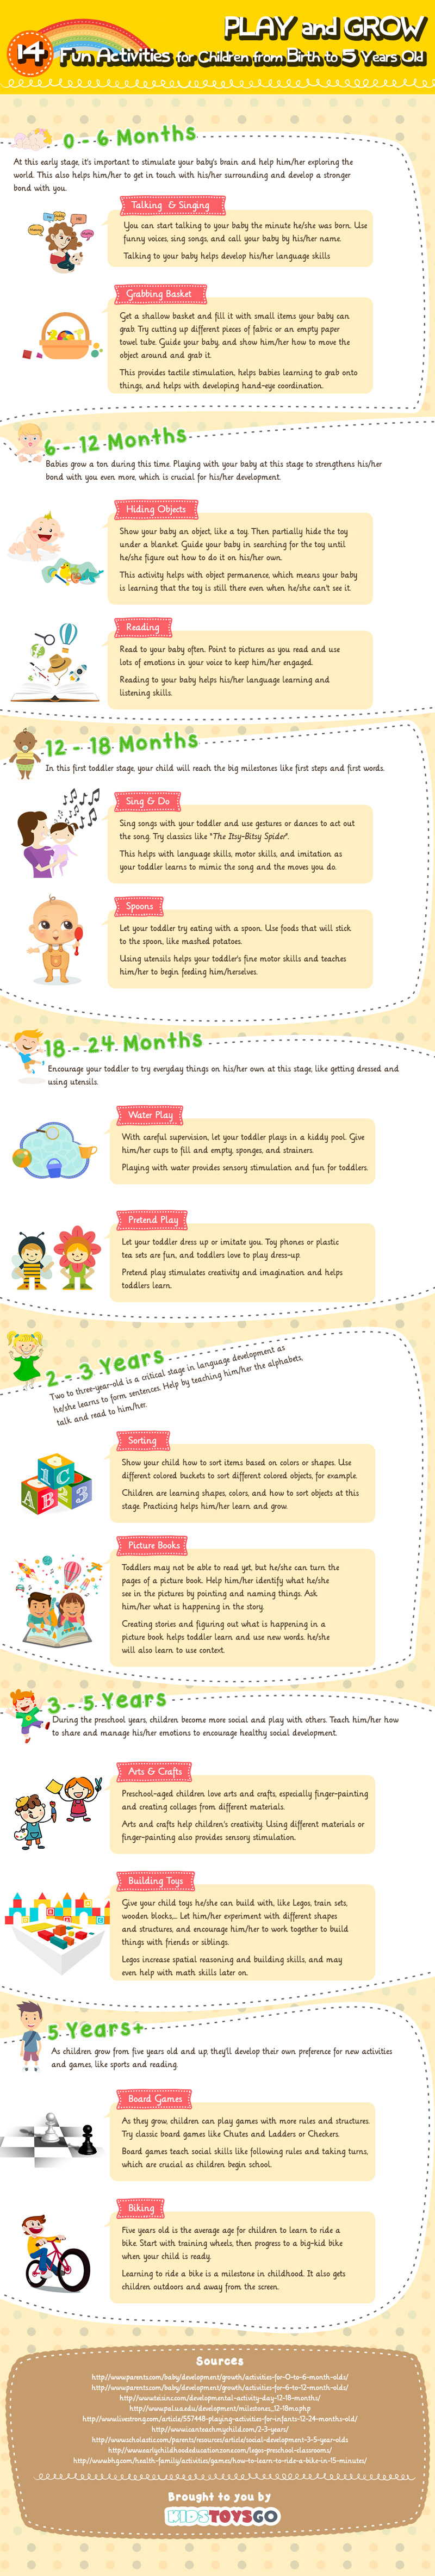 Infographic 14 Fun Activities For Children From Birth To 5 Years Old